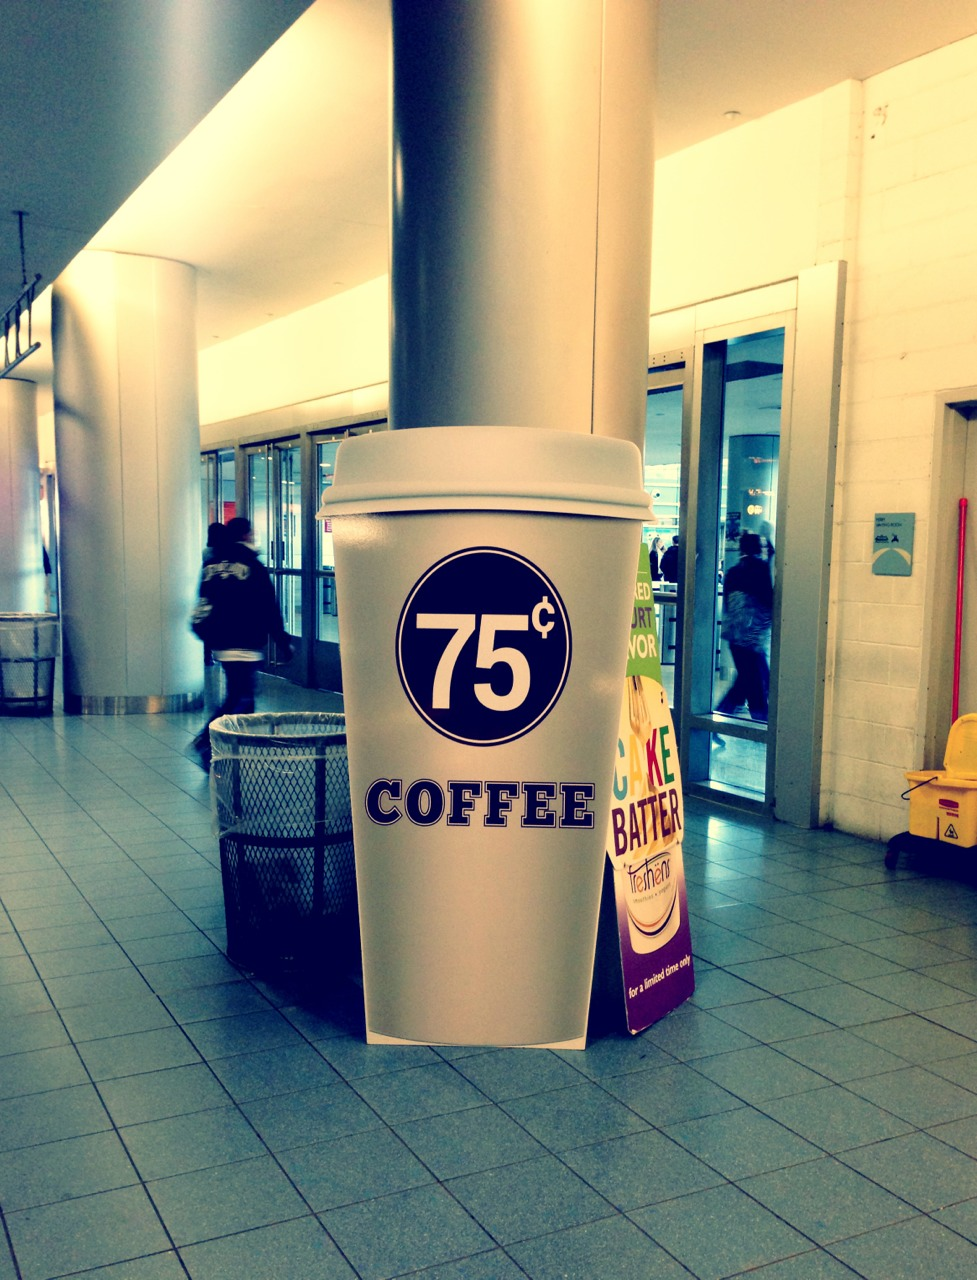 Here's to hoping the coffee is to scale…